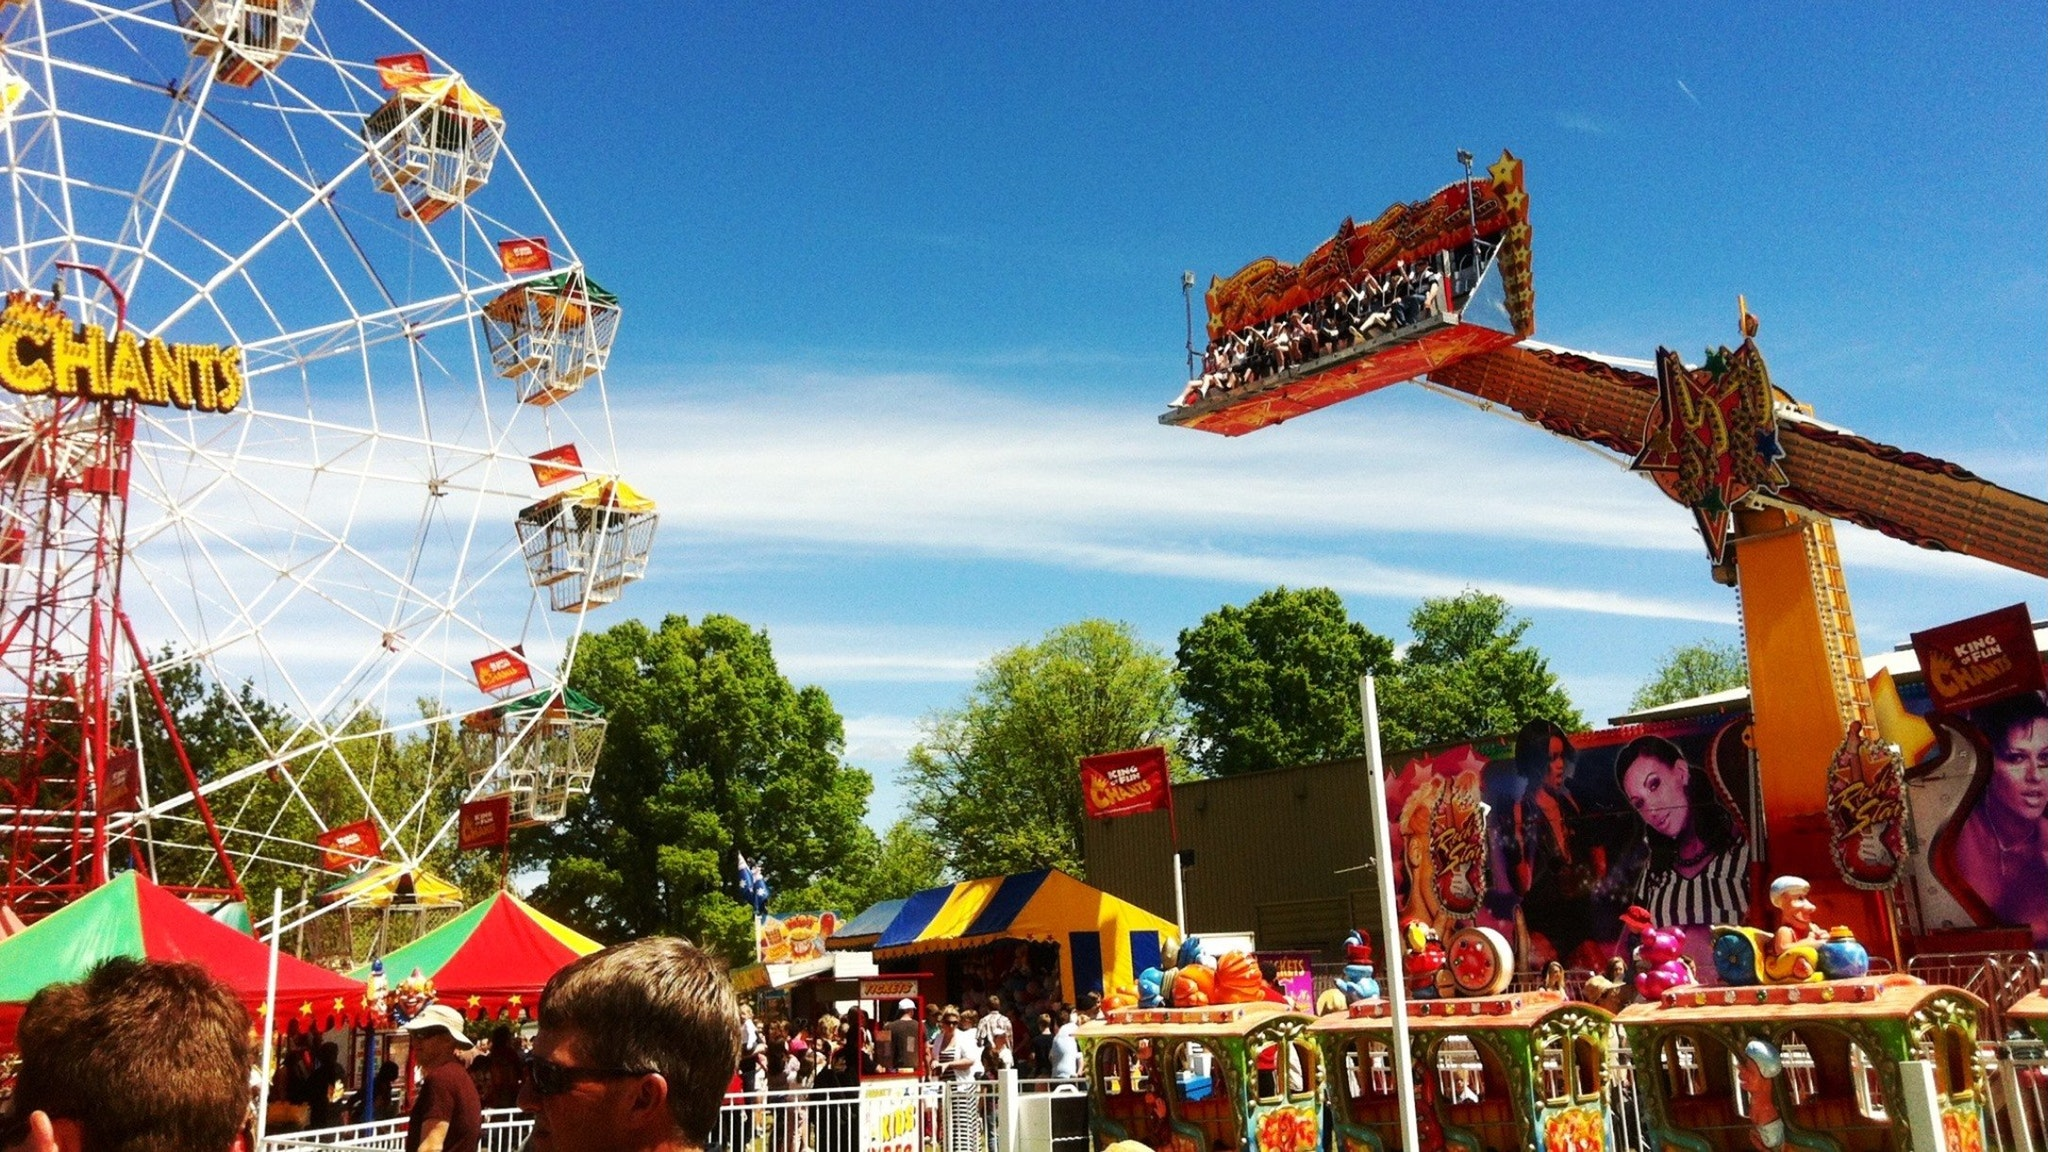 Myrtleford Show sideshow attractions